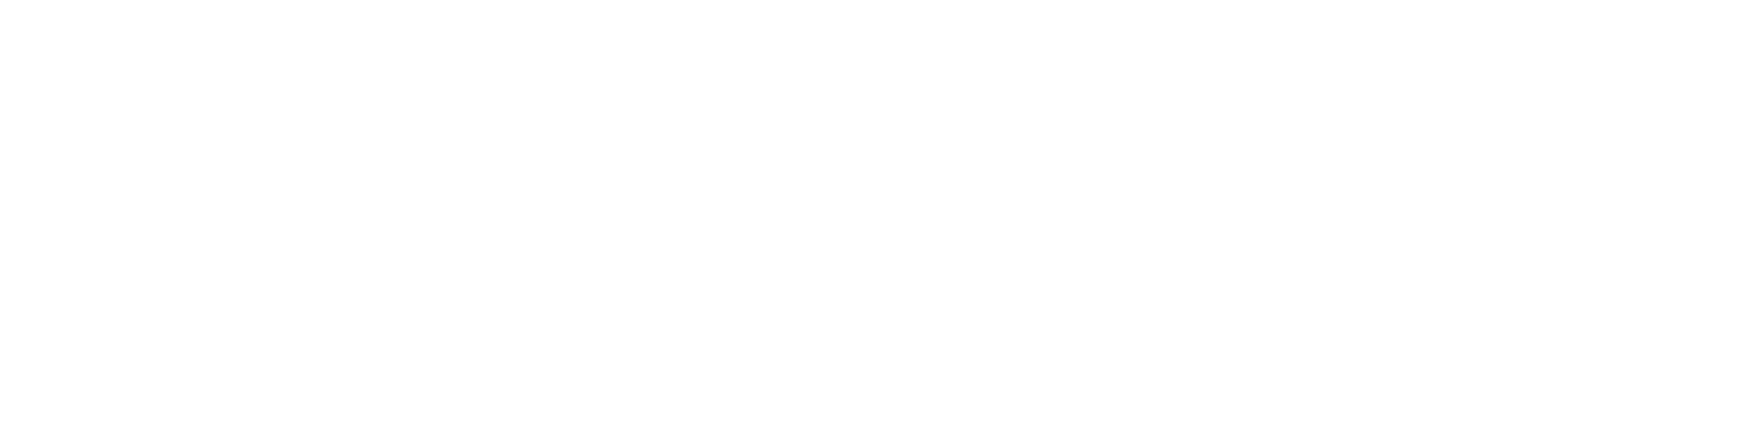 Wellness Corporate Solutions